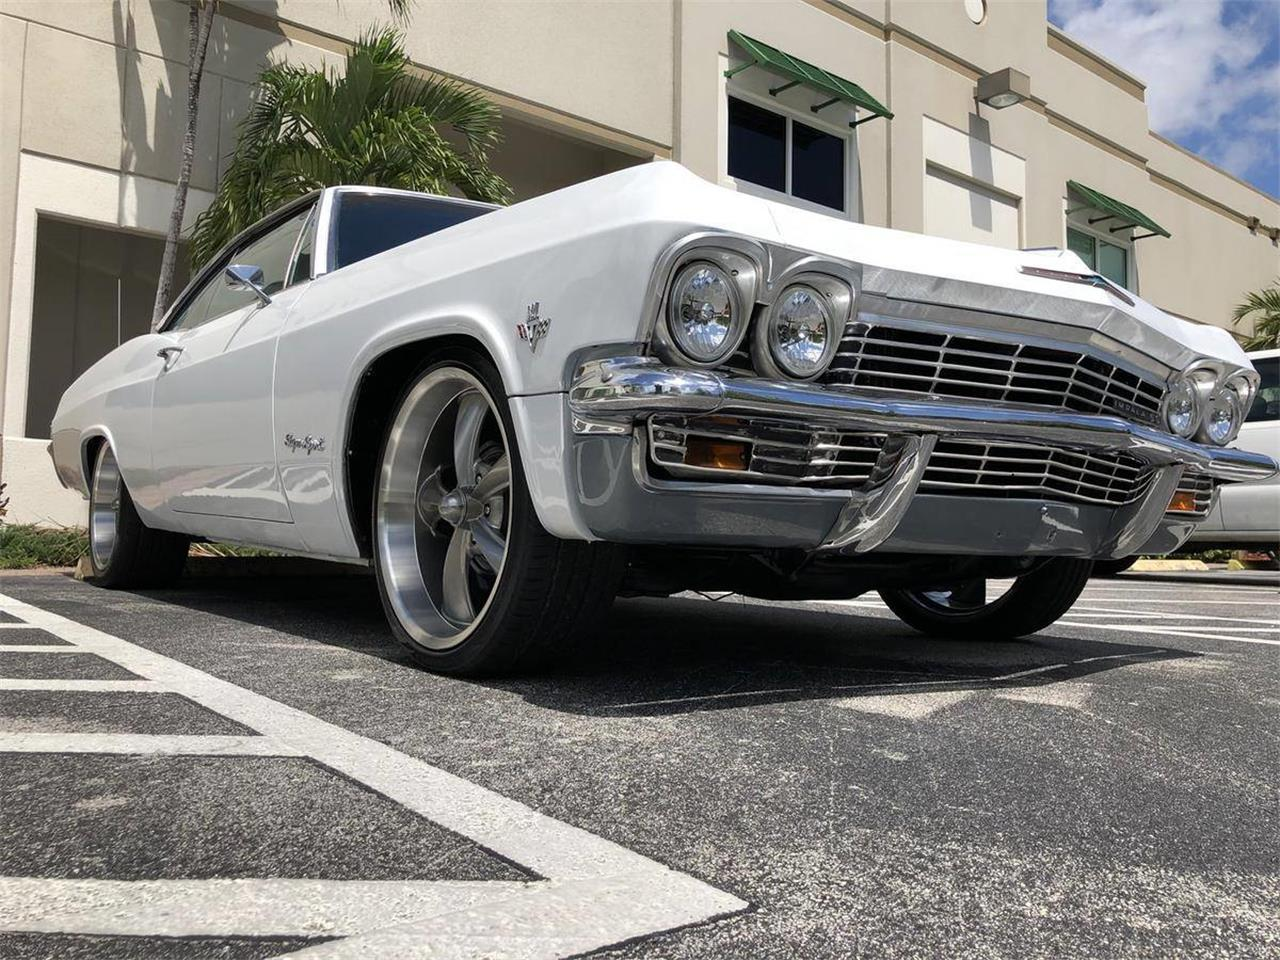 Large Picture of Classic '65 Chevrolet Impala SS located in Florida - $20,000.00 Offered by a Private Seller - NNRP